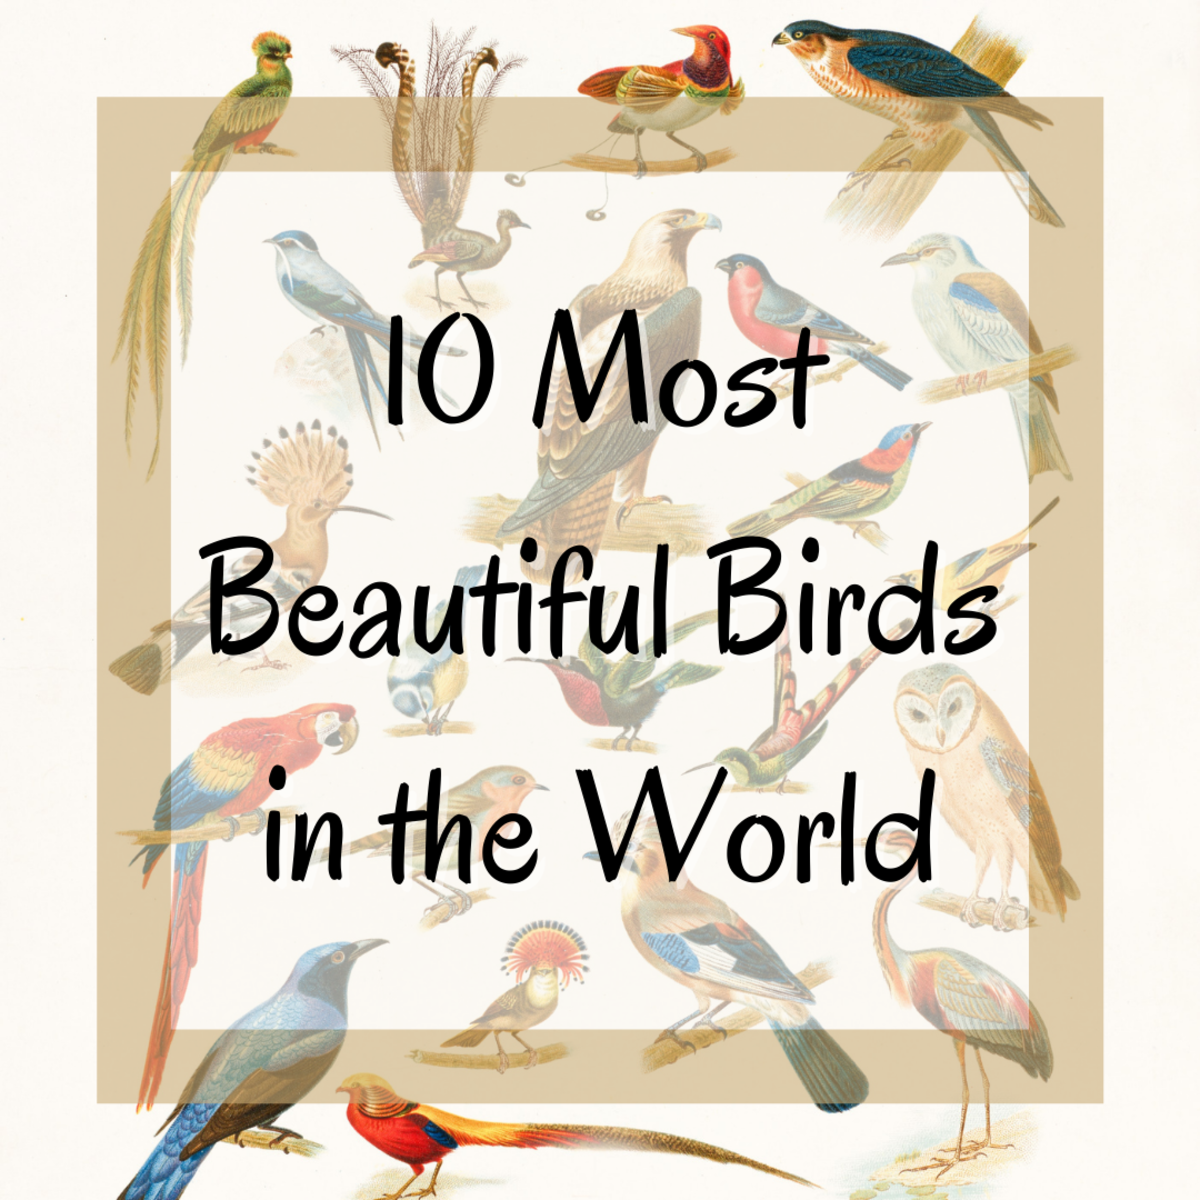 Learn facts and info about some of the world's most beautiful birds!